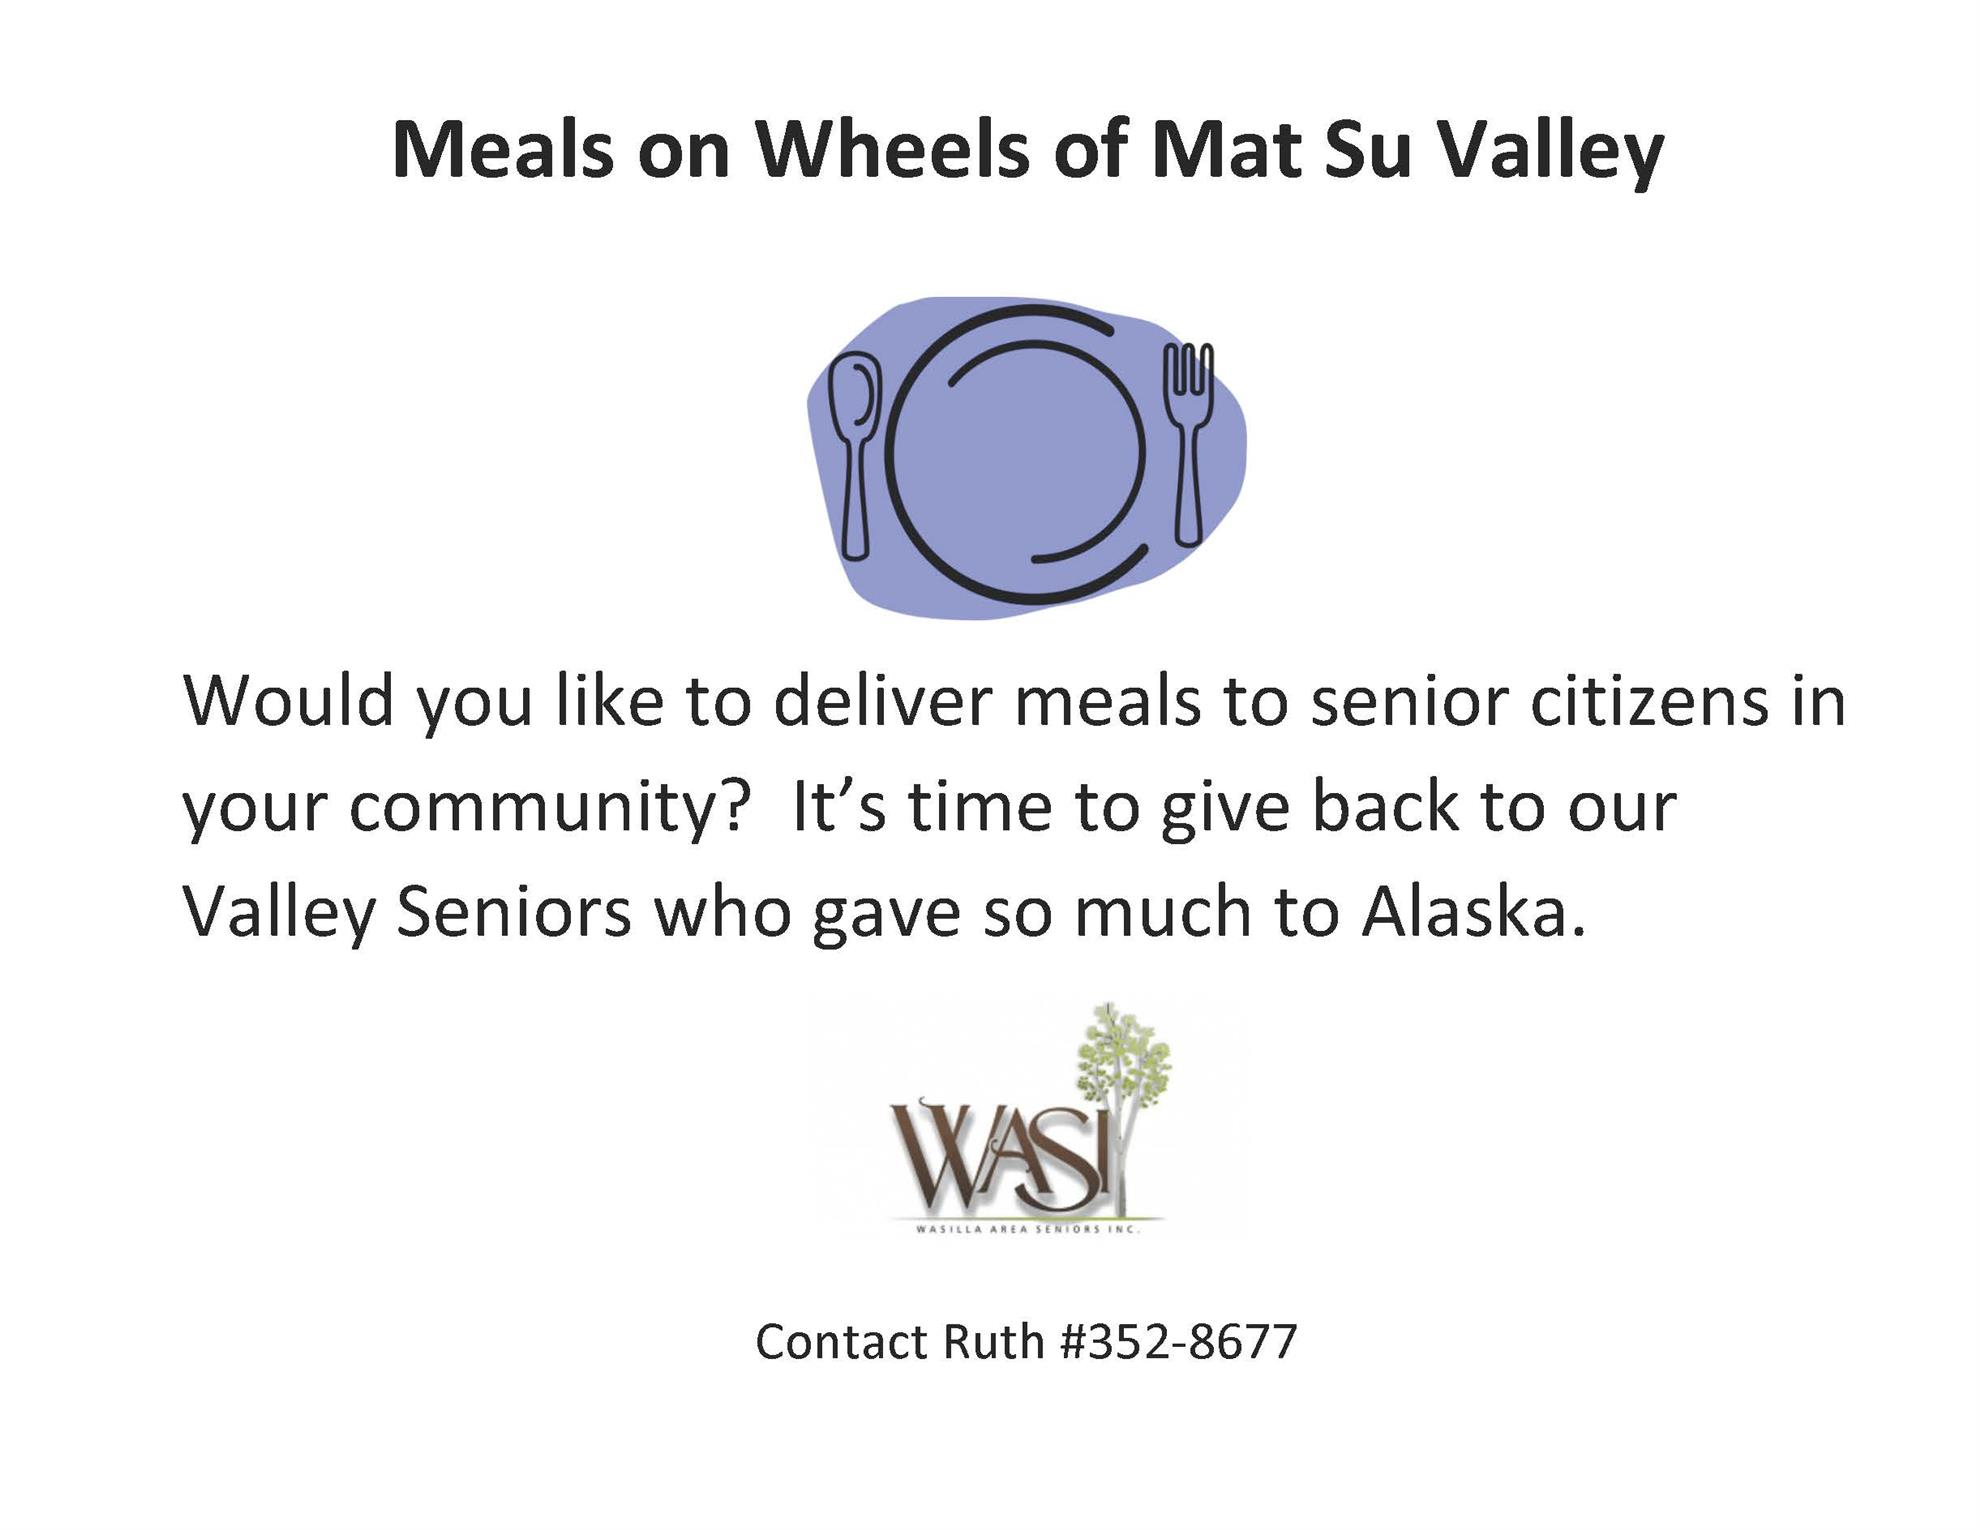 Meals on Wheels Mat Su Valley